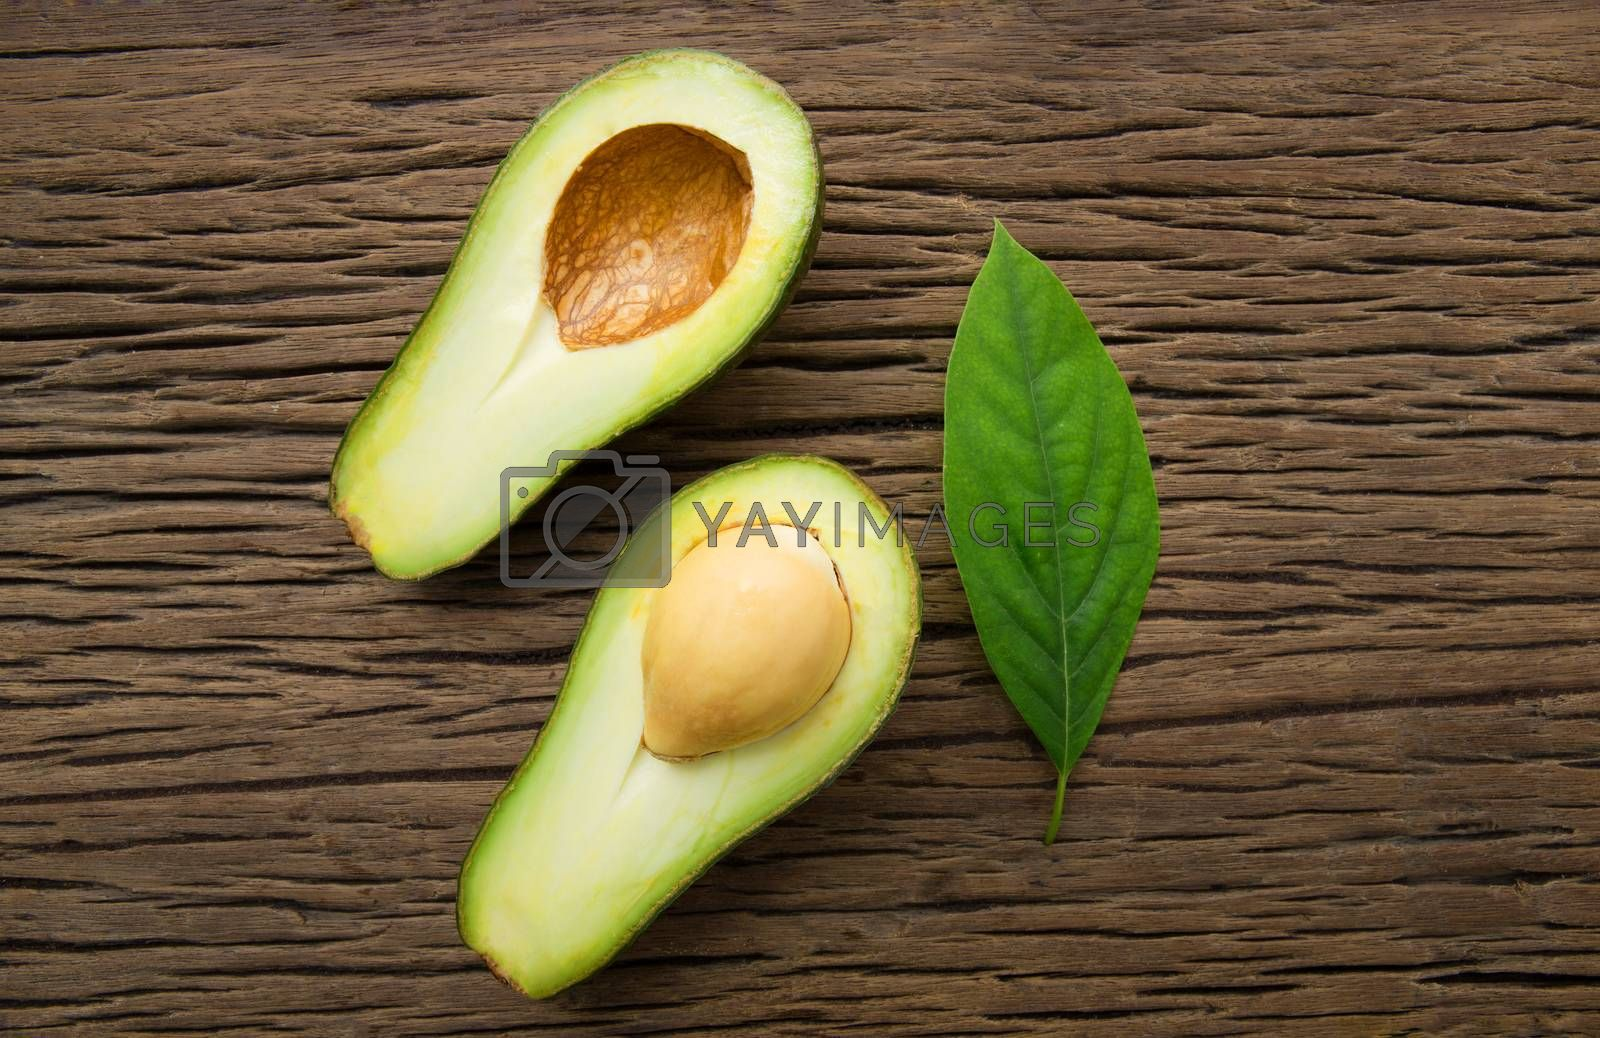 Avocado on a brown wood background. by Bowonpat